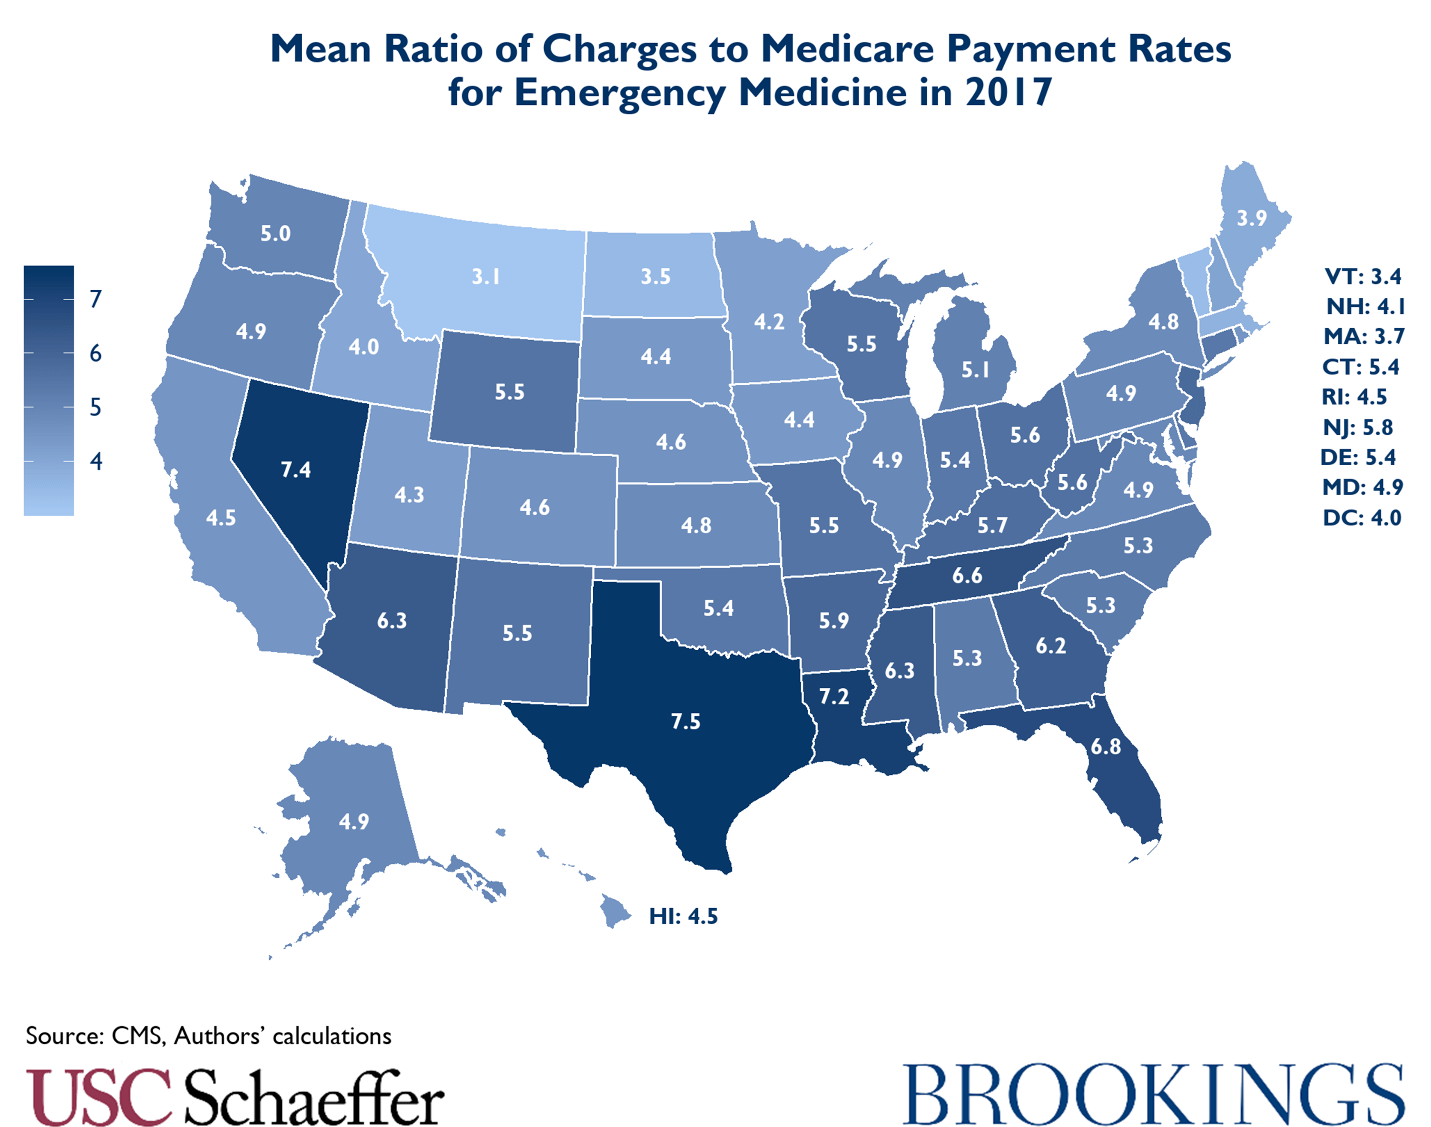 Mean ratio of charges to Medicare payment rates for emergency medicine in 2017